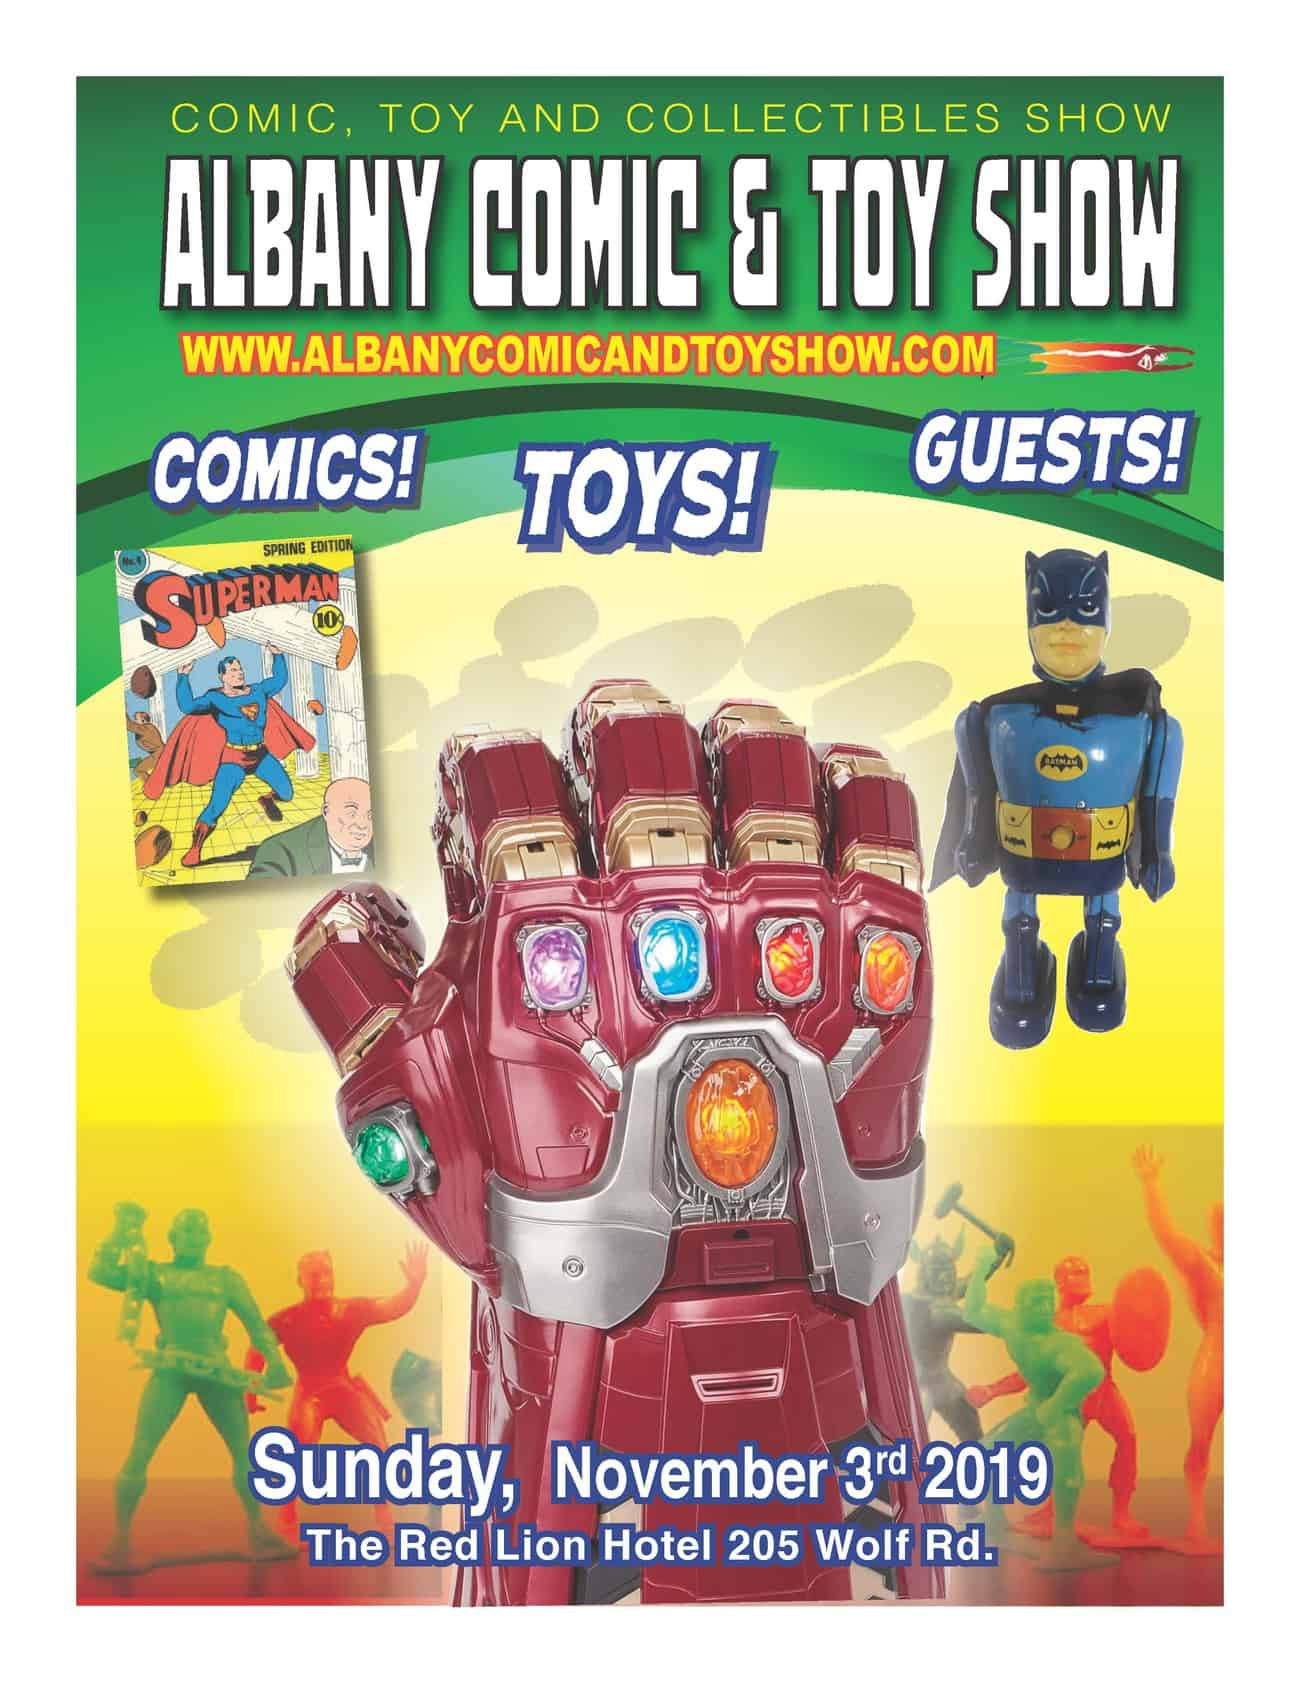 Albany Comic & Toy Show